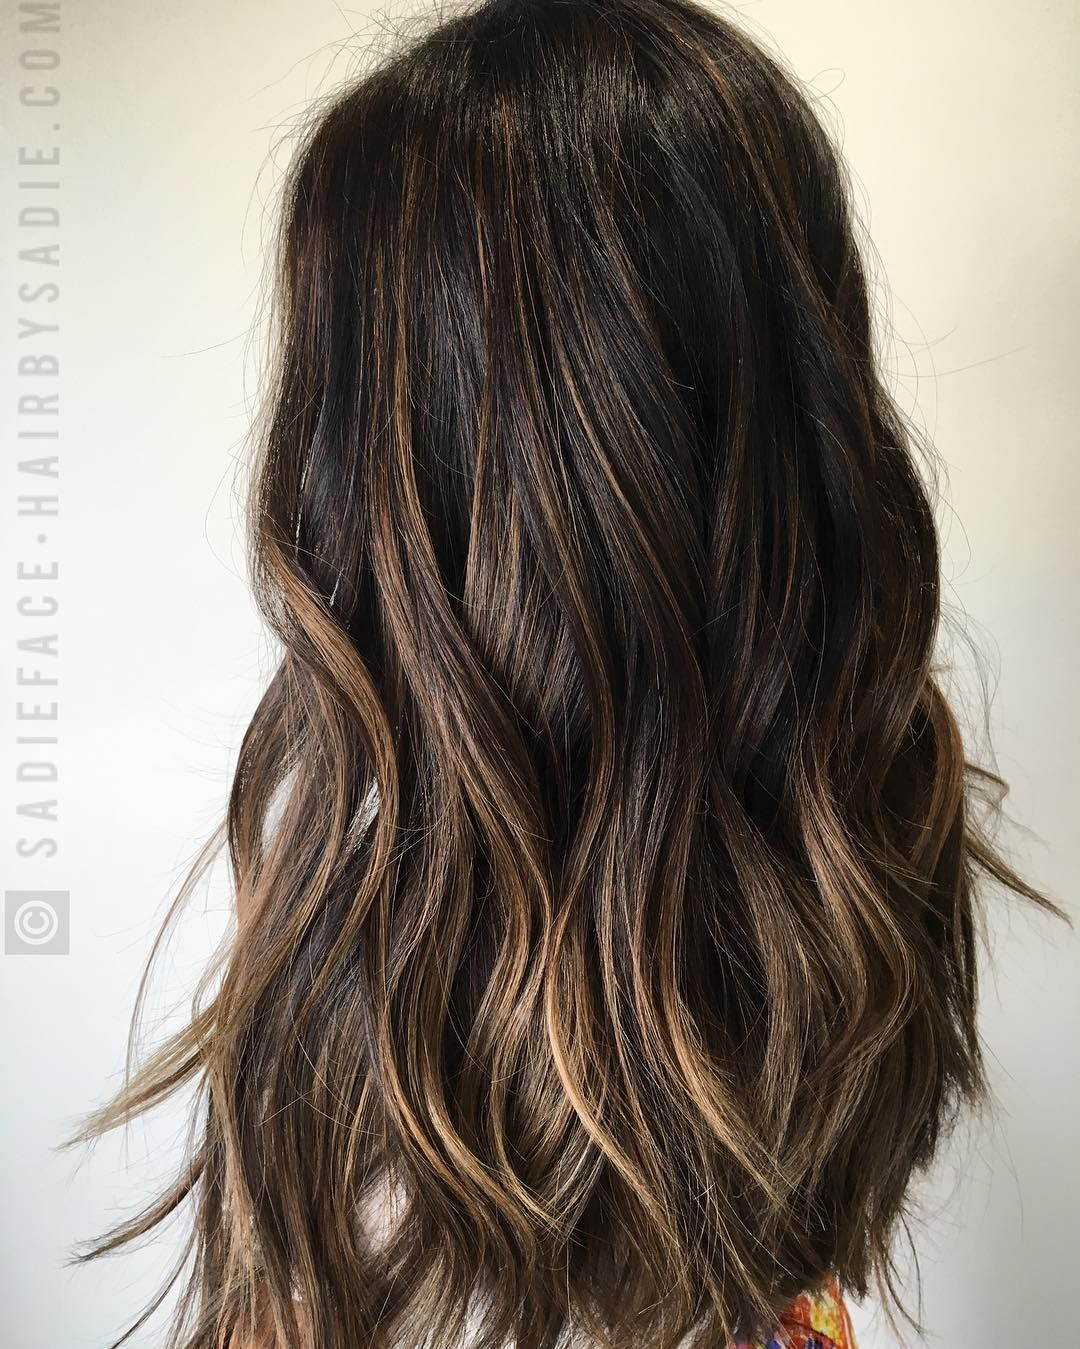 Hair extensions haircolor on instagram mocha w sunlit tips hair extensions haircolor on instagram mocha w sunlit tips this pmusecretfo Choice Image